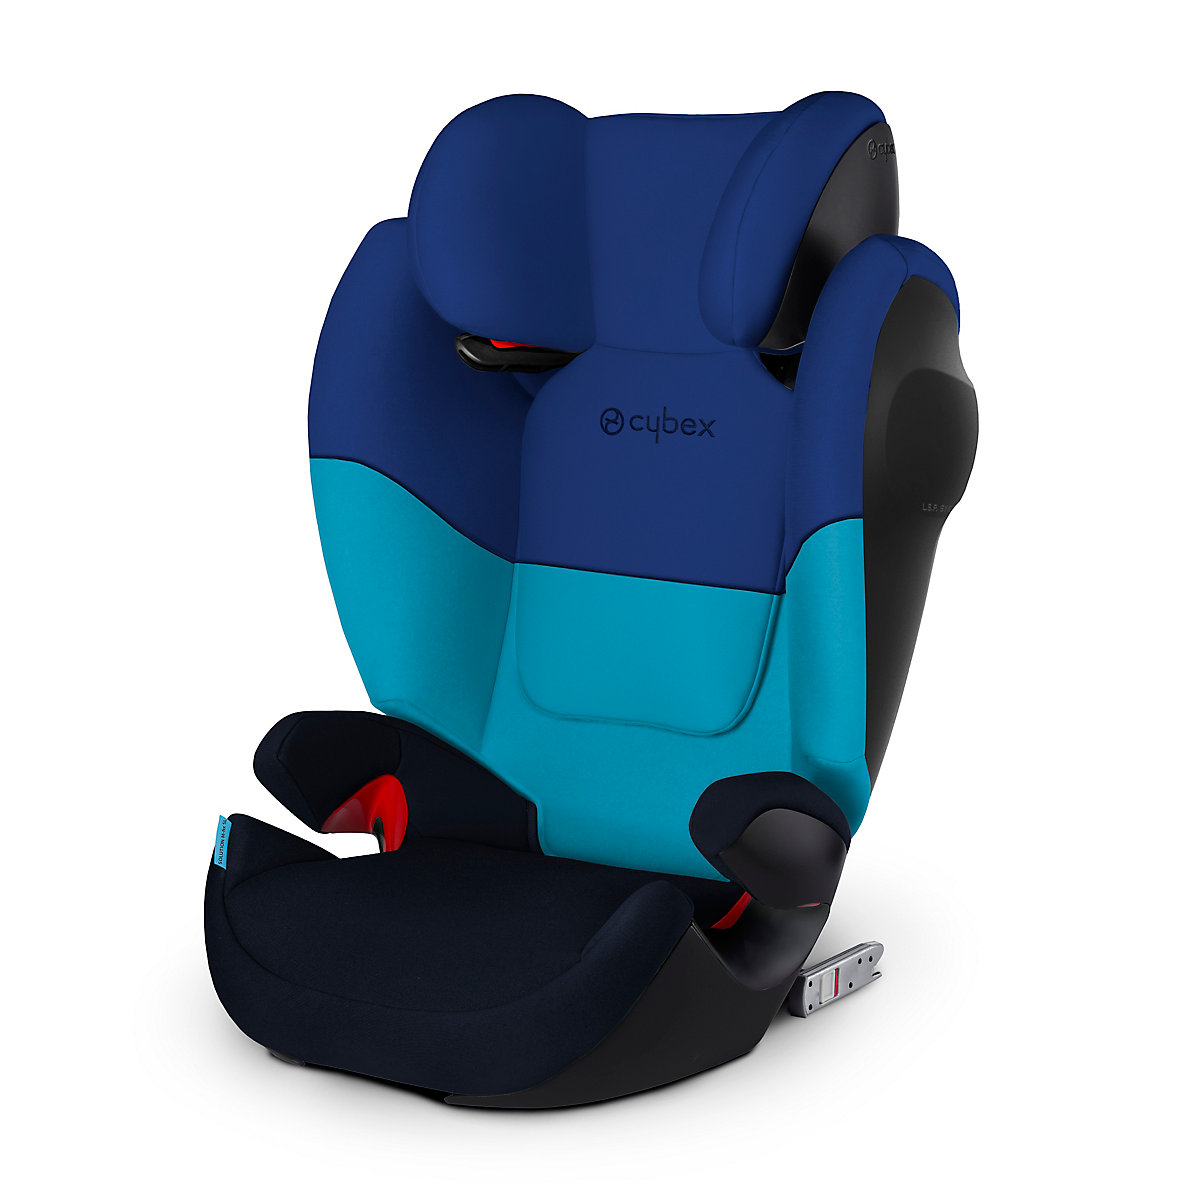 Cybex solution m fix sl highback booster seat - blue moon